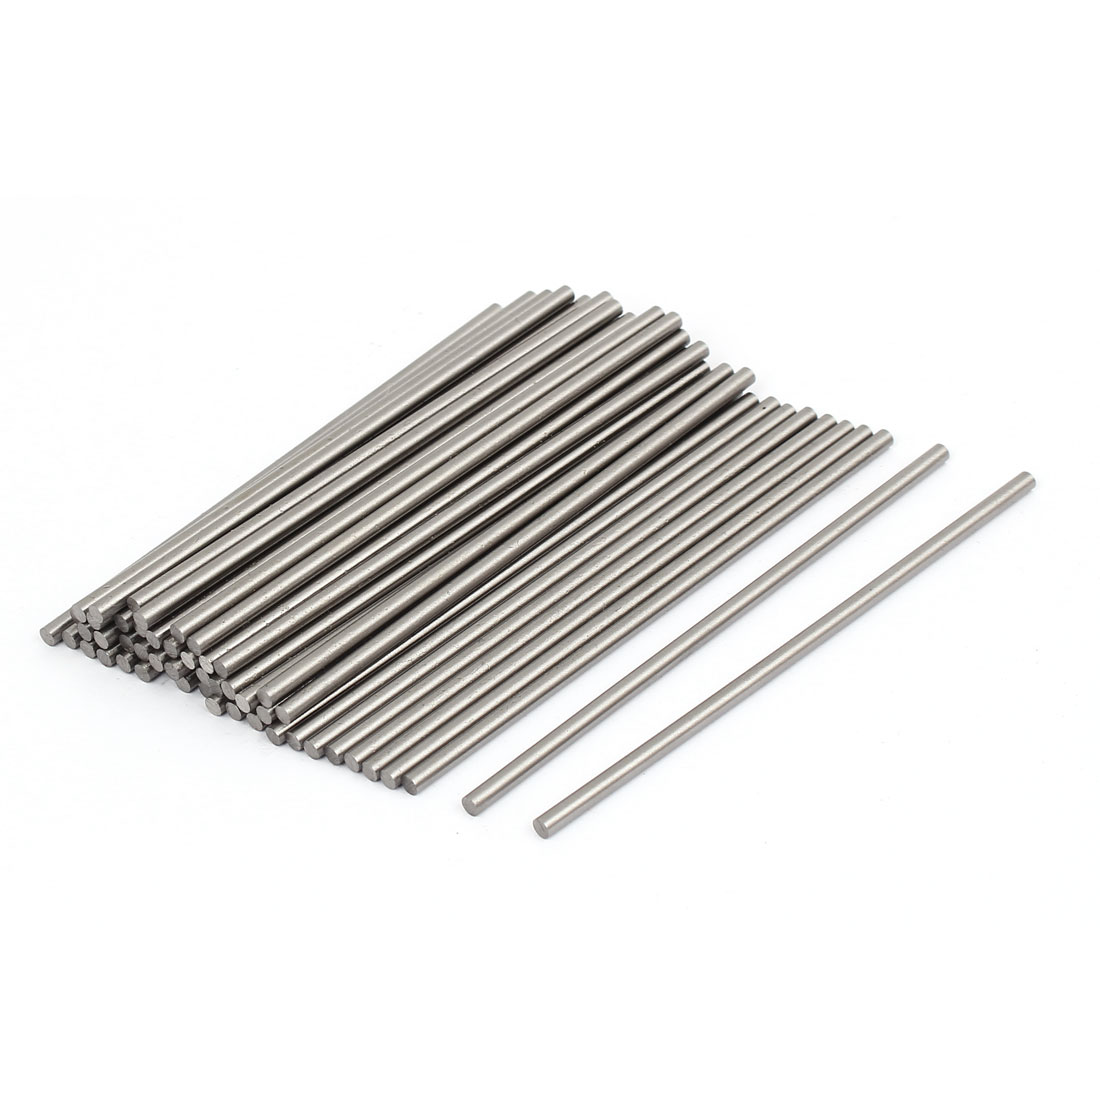 3mm Diameter 100mm Long HSS Round Turning Lathe Carbide Bars 50pcs